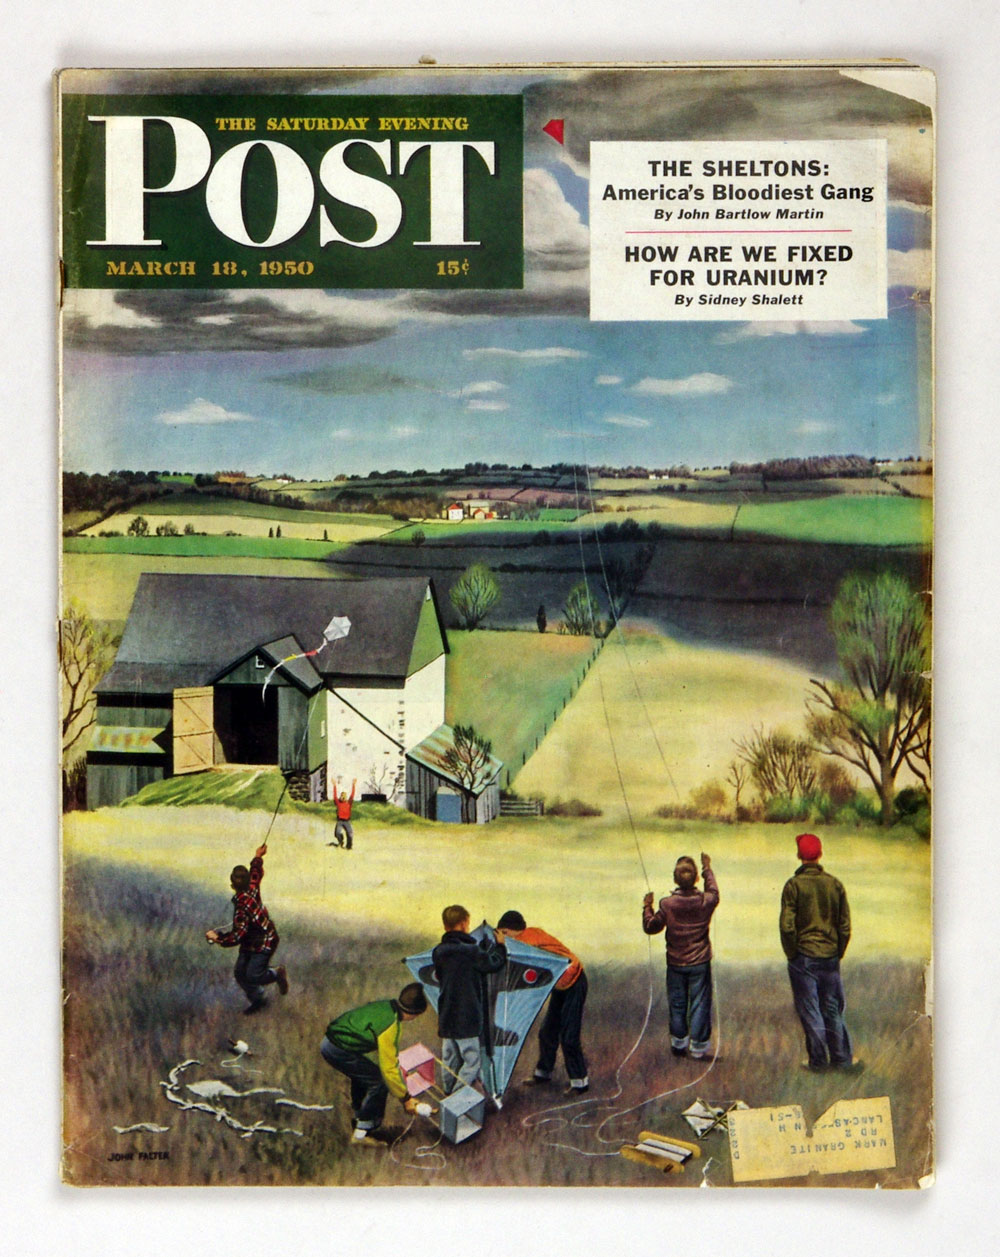 The Saturday Evening Post 1950 Mar 18 Kite Flying by John Falter